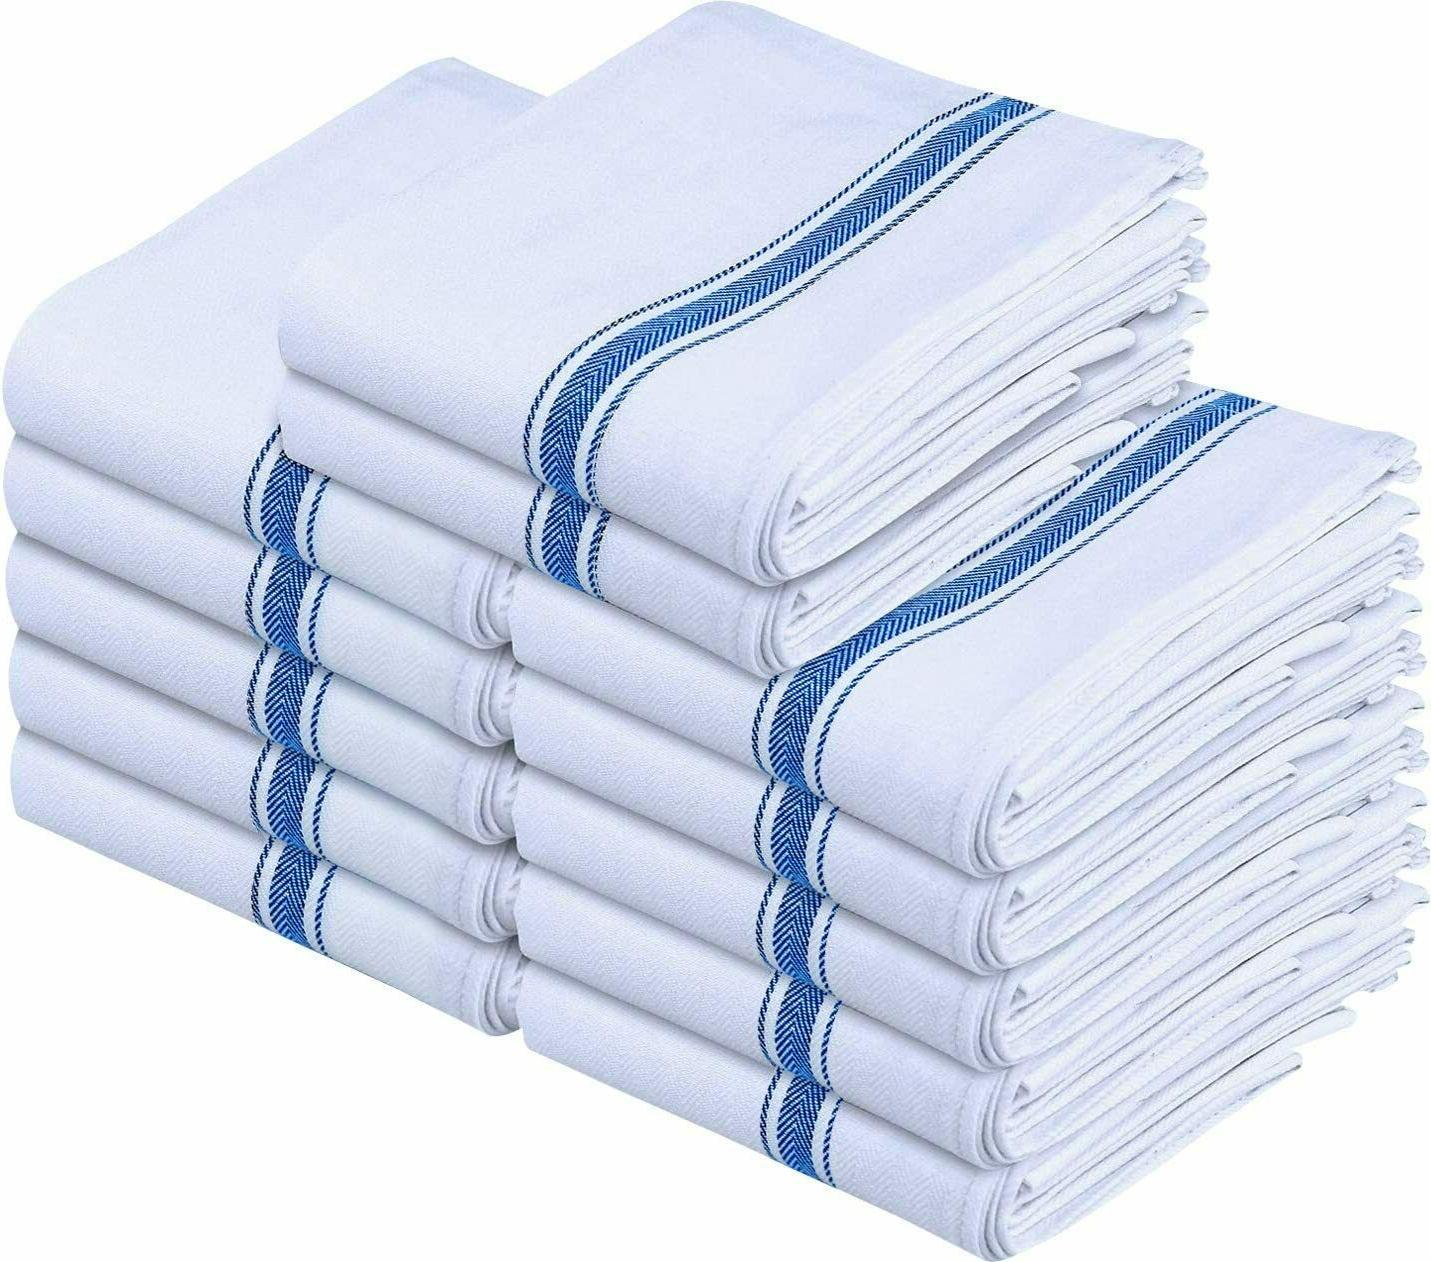 dish towels 12 pack white cotton 15